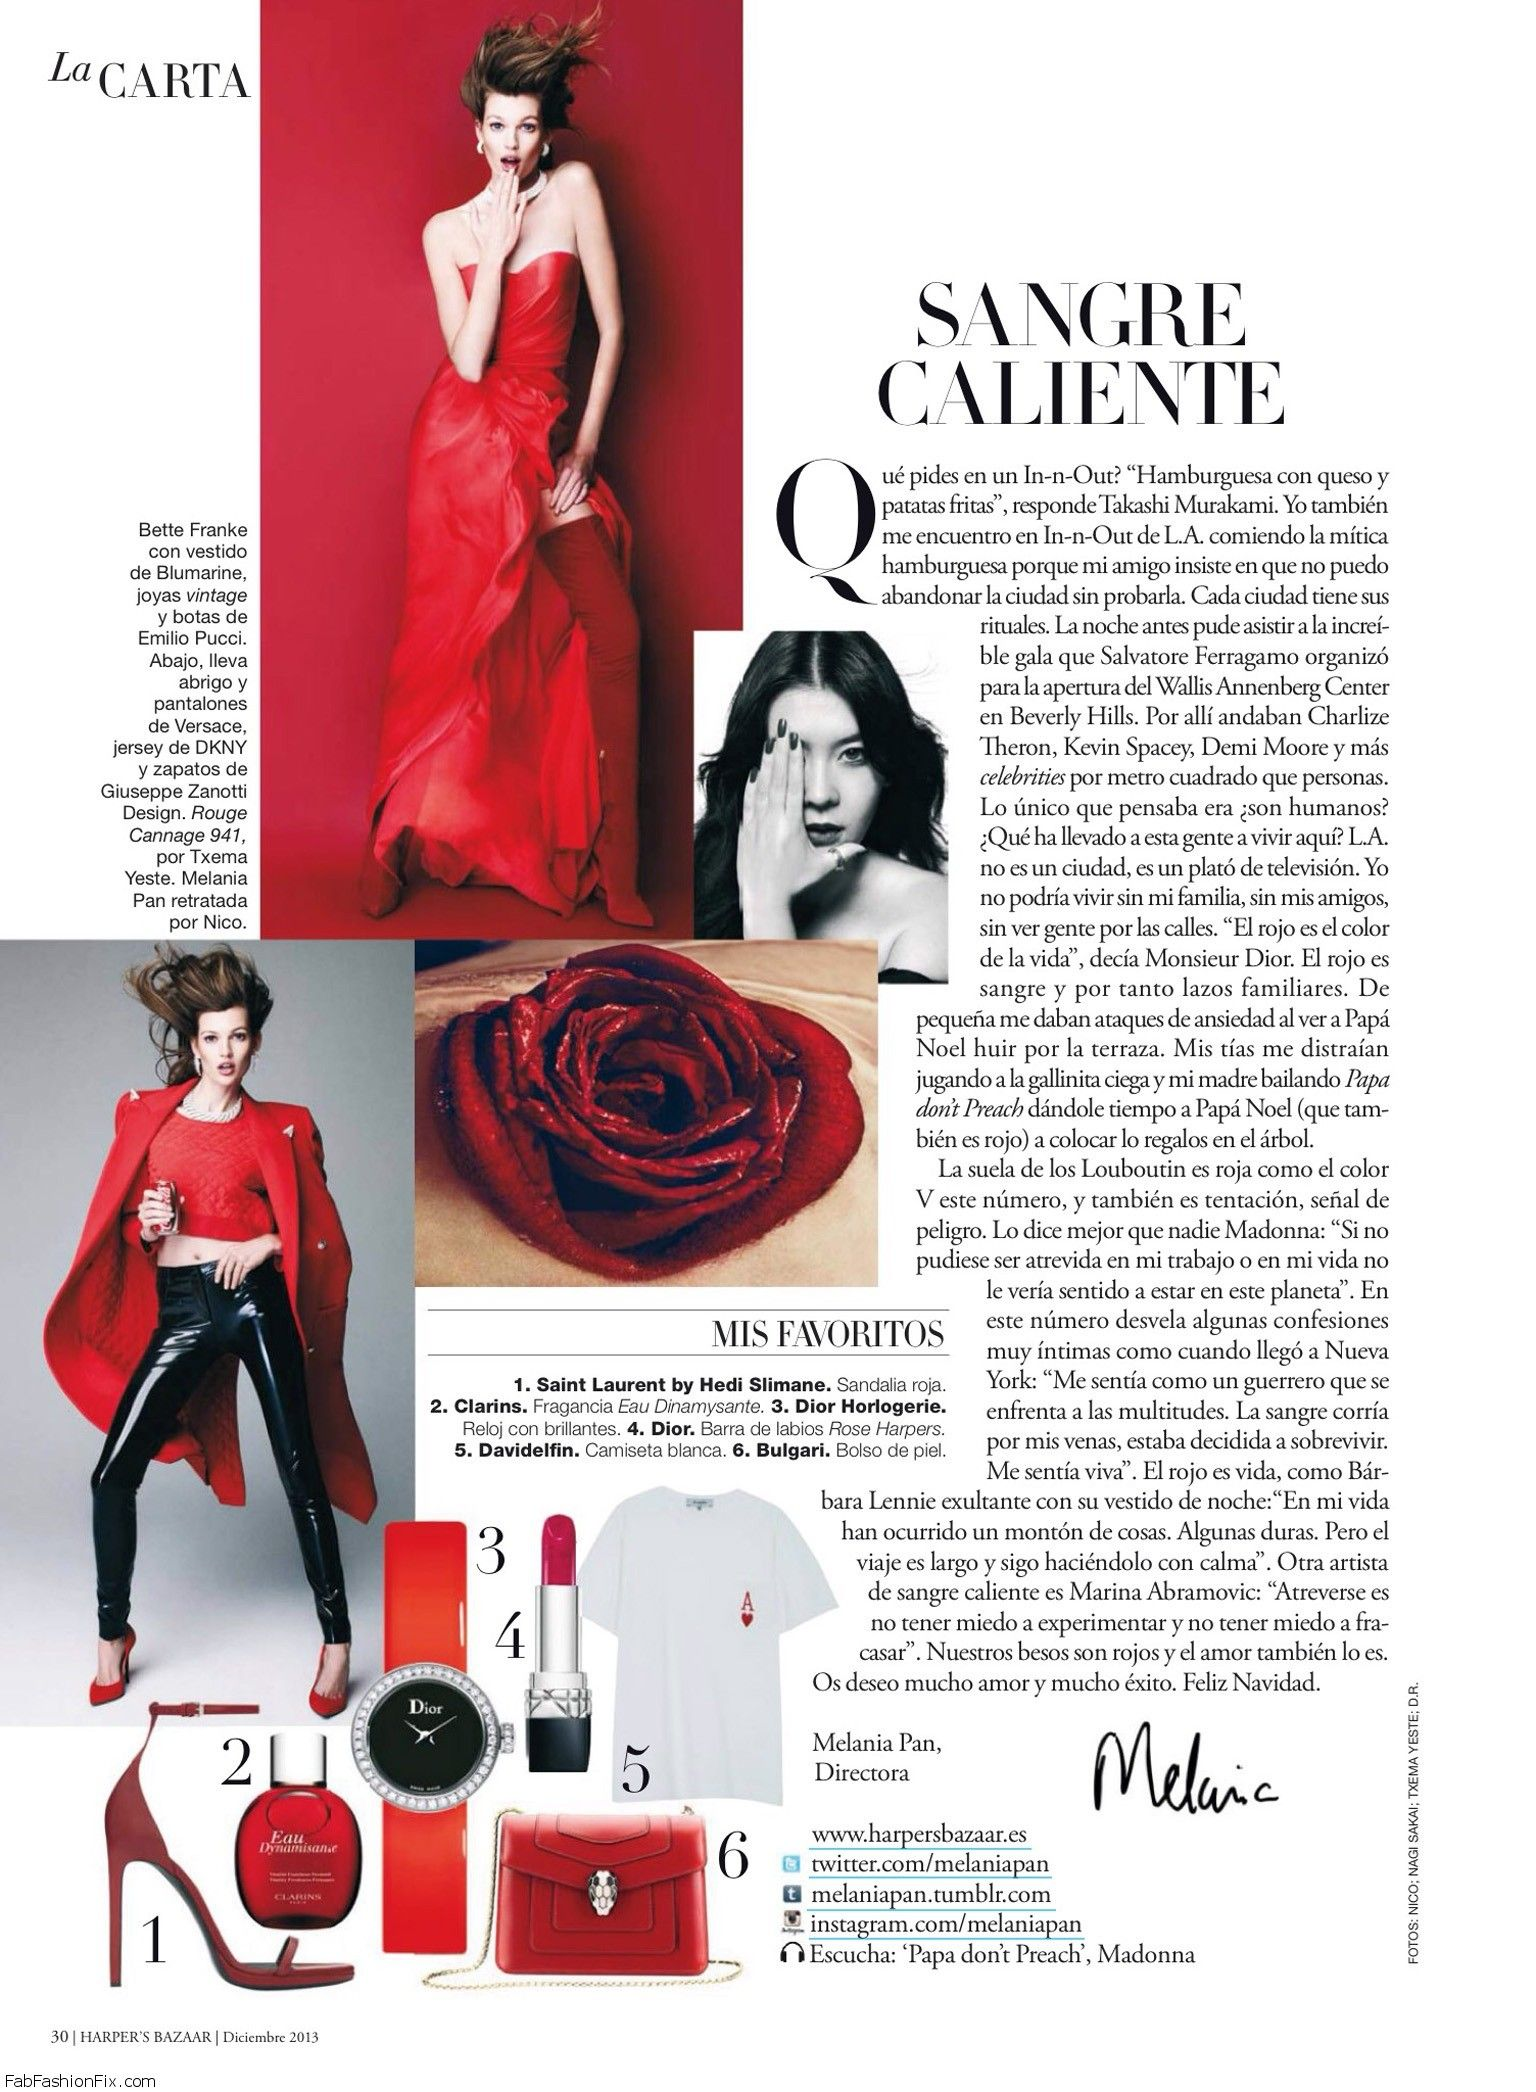 fashion_scans_remastered-bette_frank-harpers_bazaar_espana-december_2013-scanned_by_vampirehorde-hq-2